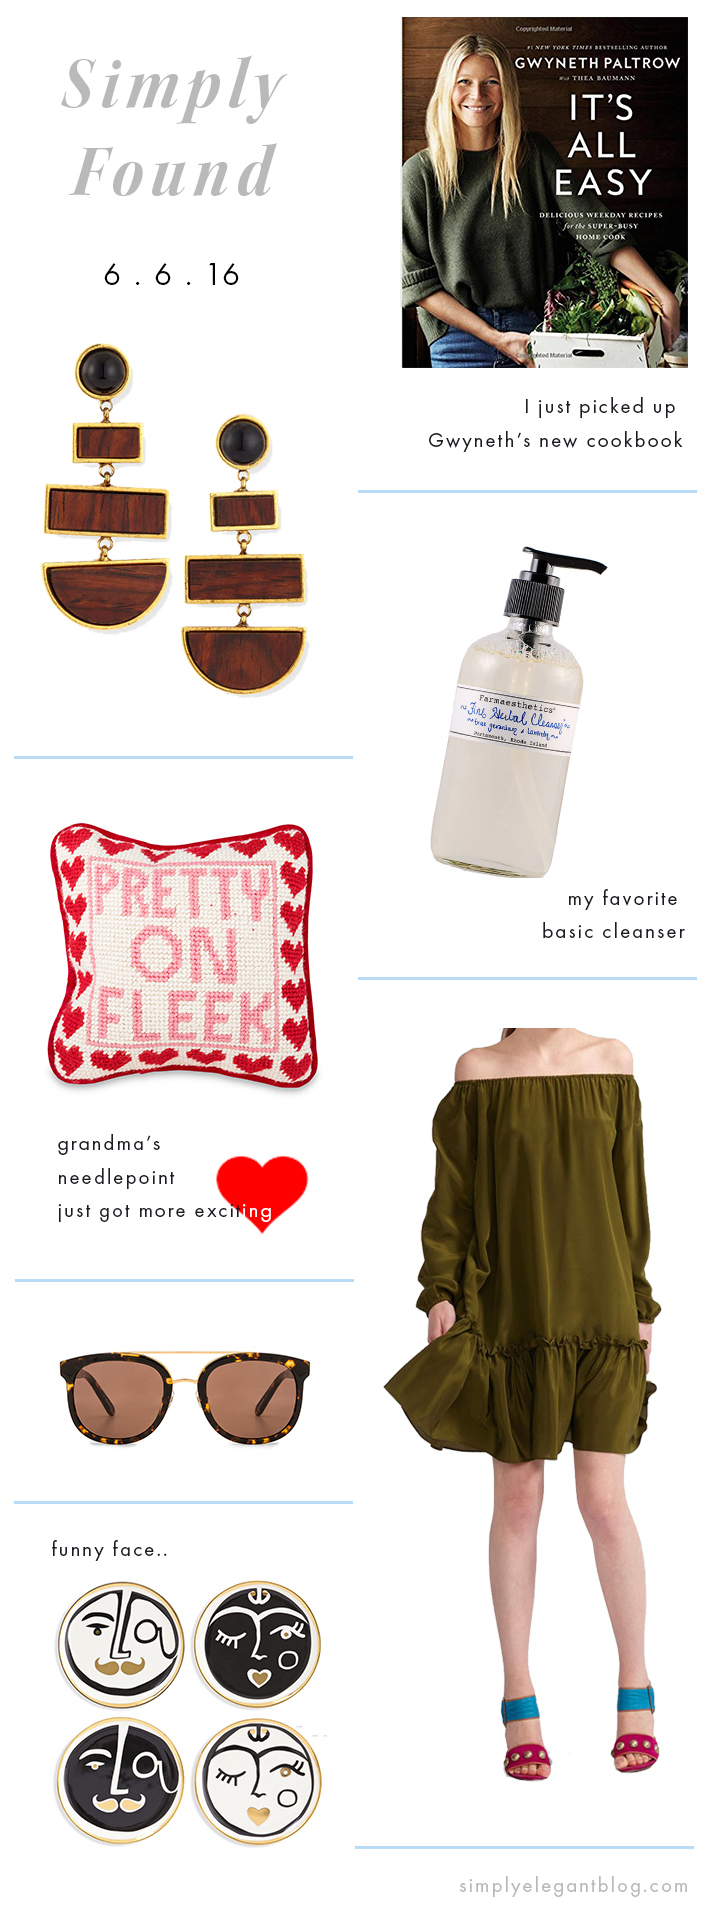 Simply Found #1 - Item Roundup